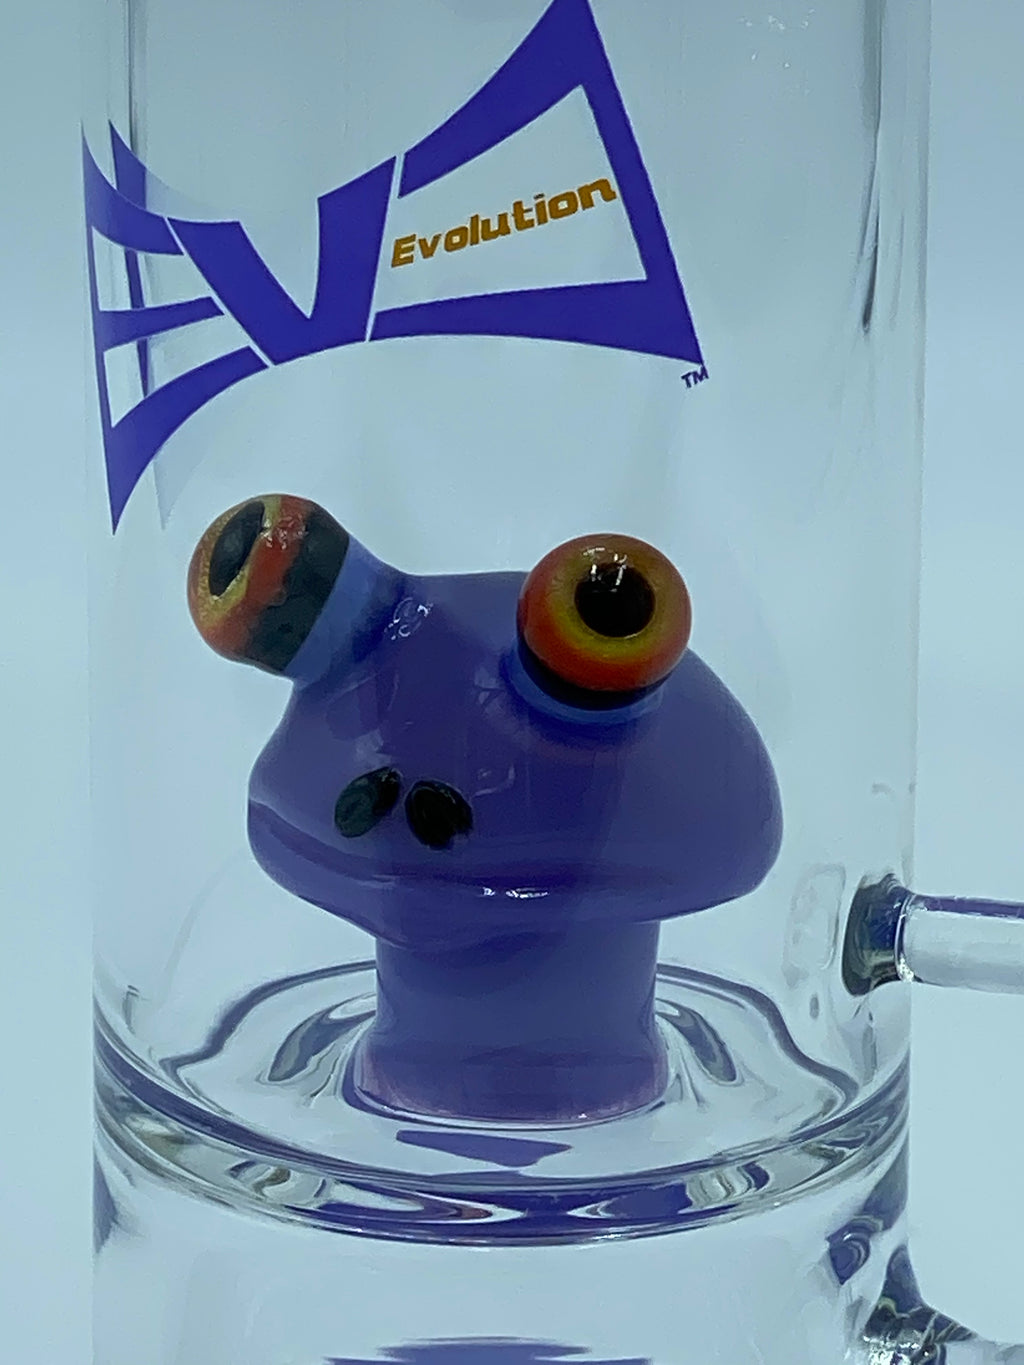 Evolution Glass PURPLE KERMIT PERCOLATOR - Smoke Country - Land of the artistic glass blown bongs